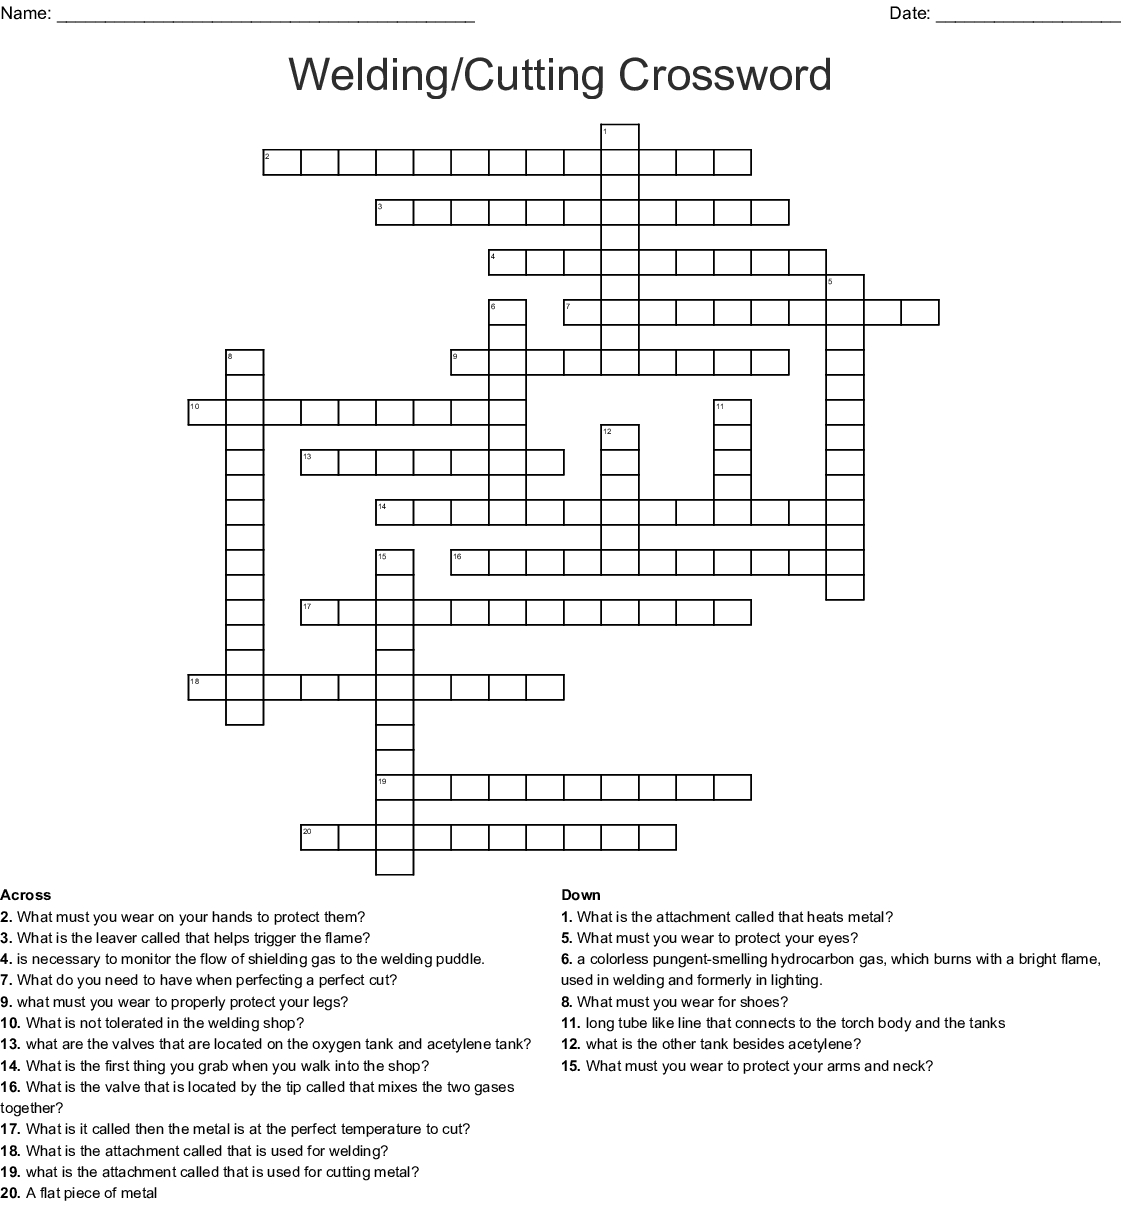 Crossword puzzle clues & answers introduction to welding crossword answers